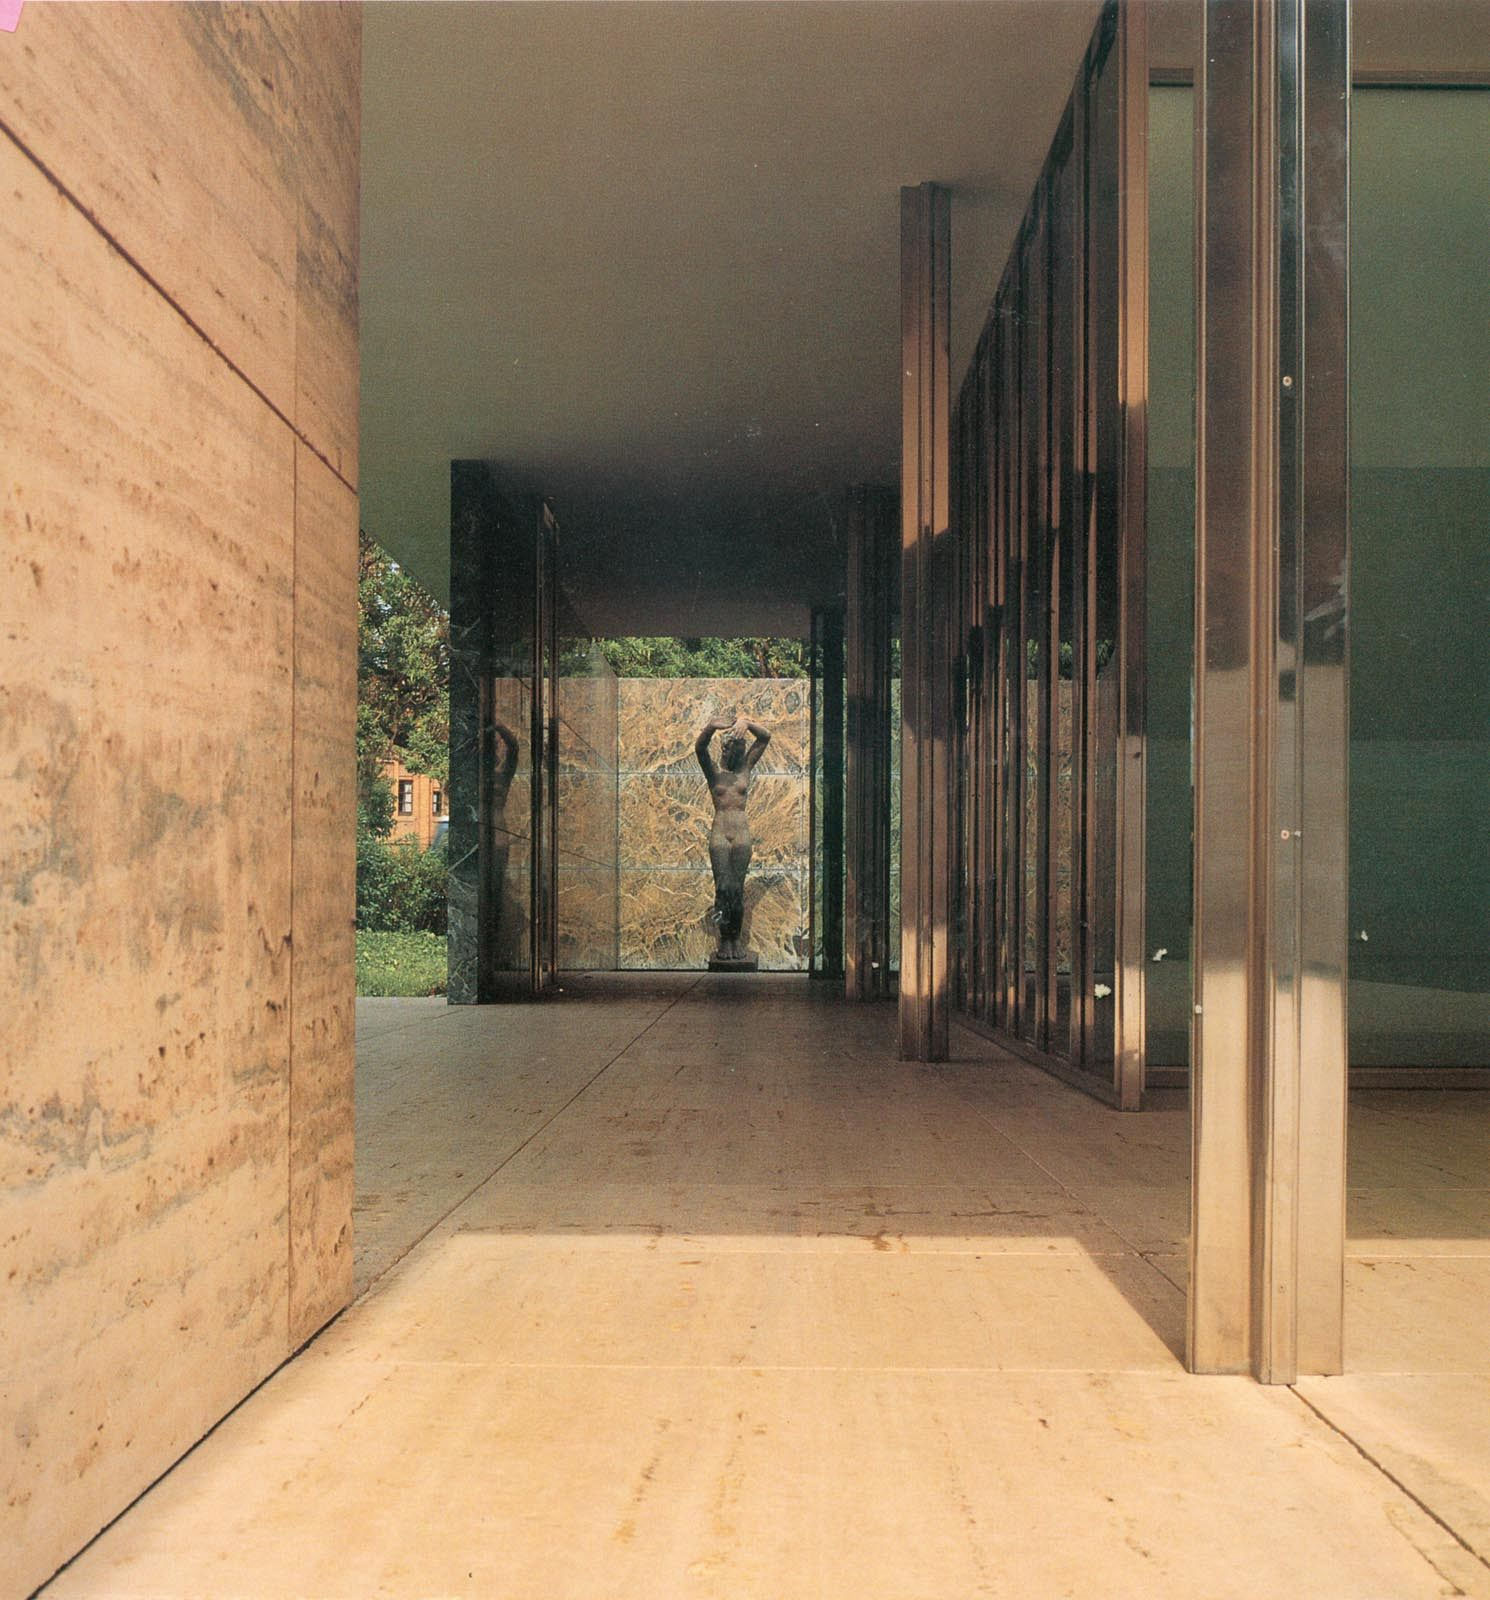 The Barcelona pavilion, 1929, with statue by Georg Kolbe. Reconstruction from 1986. Mies van der Rohe. From Solà-Morales, Cirici, Ramos: Mies van der Rohe-Barcelona Pavilion.